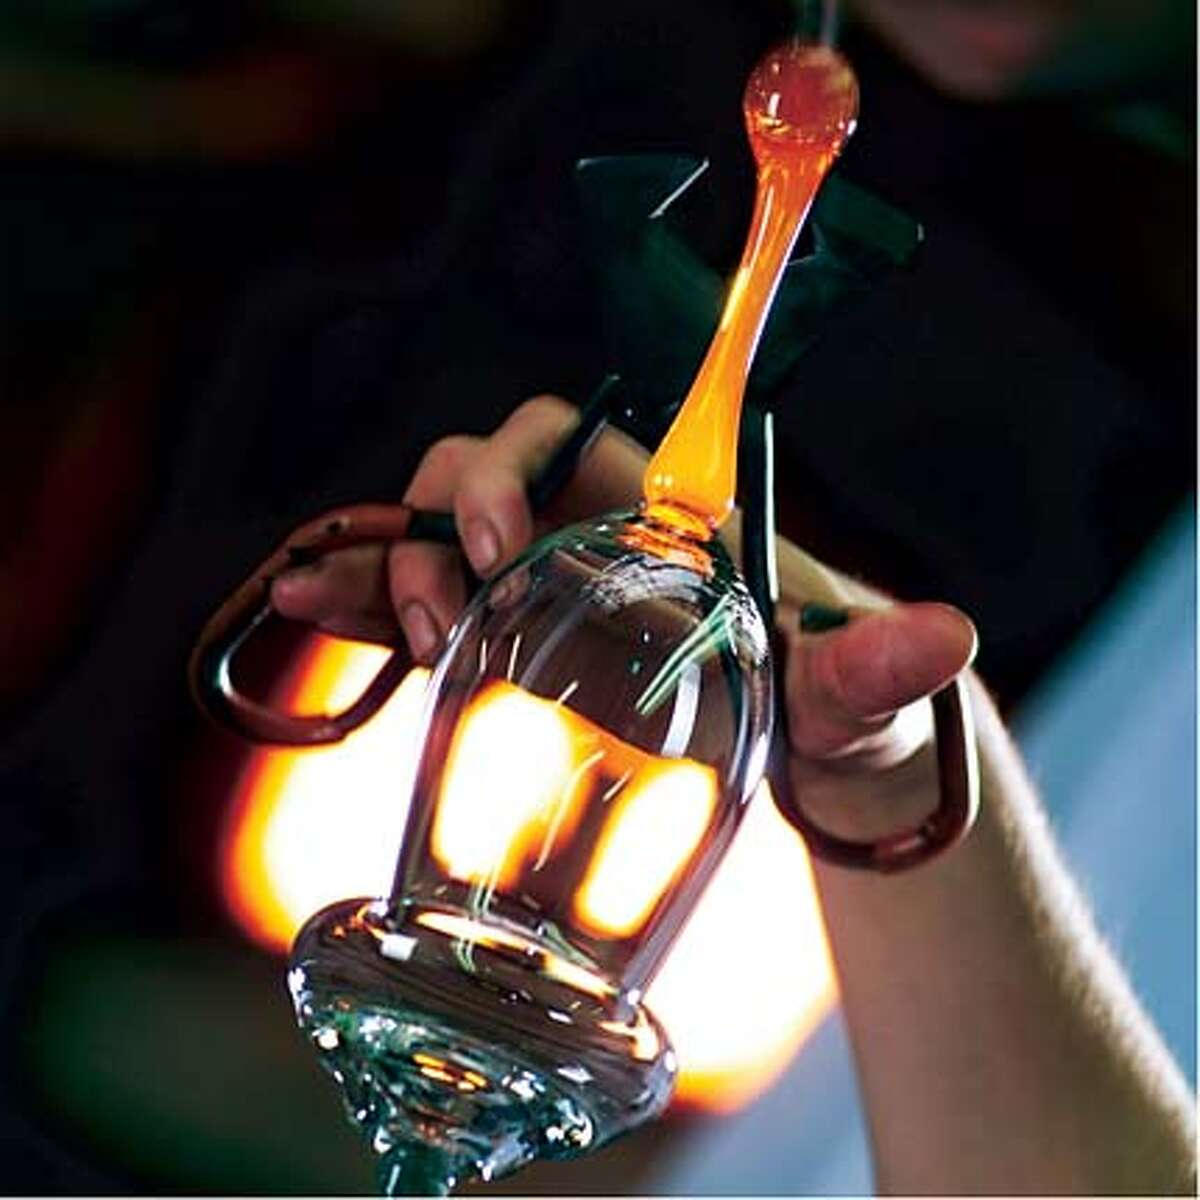 Liquid glass is cut and pulled to form the stem of a Riedel crystal wineglass.